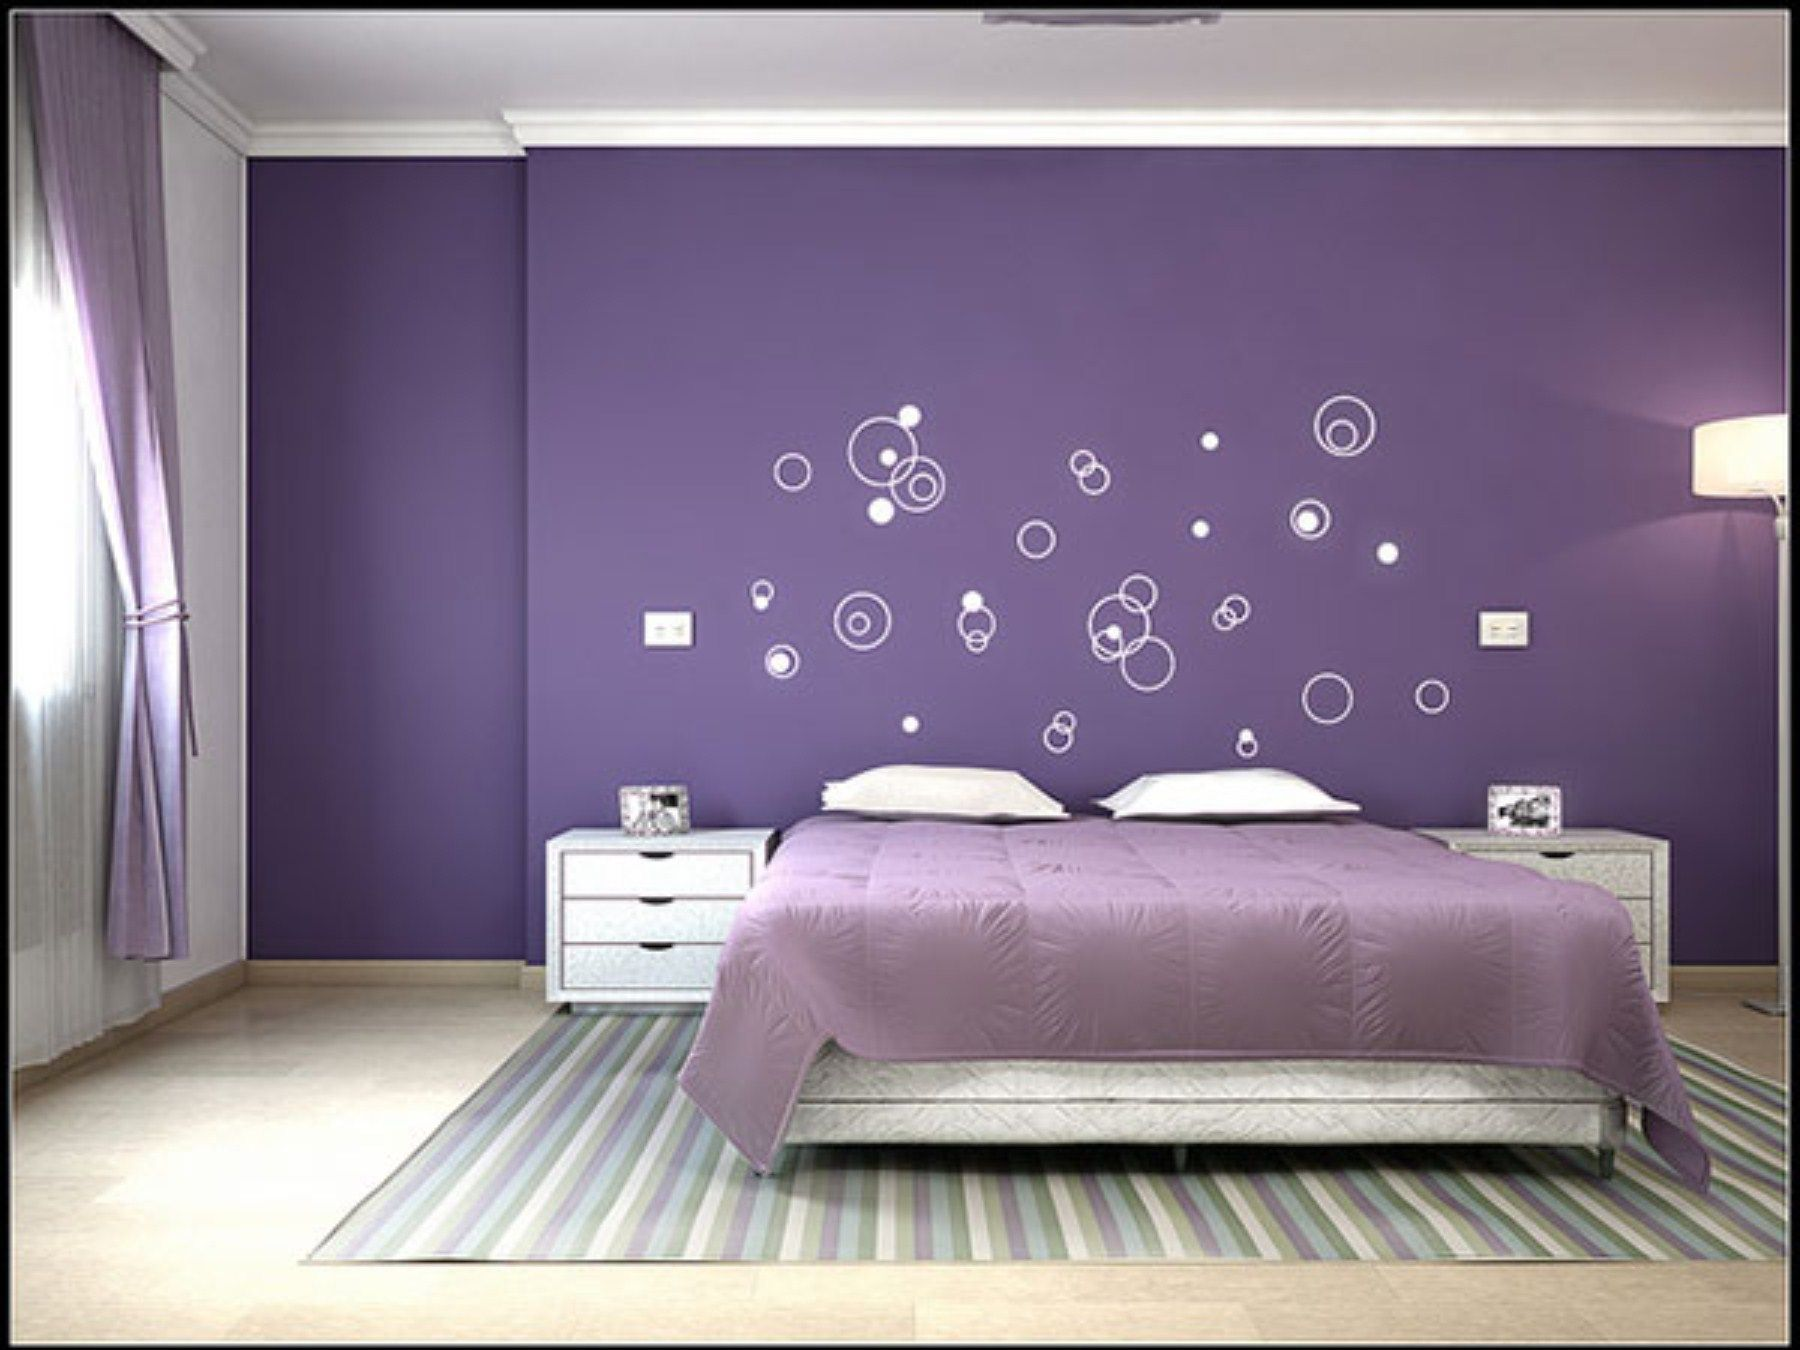 Bedroom Decorating Ideas Purple Walls purple bedroom color schemes with unique wall art | 25 bedroom